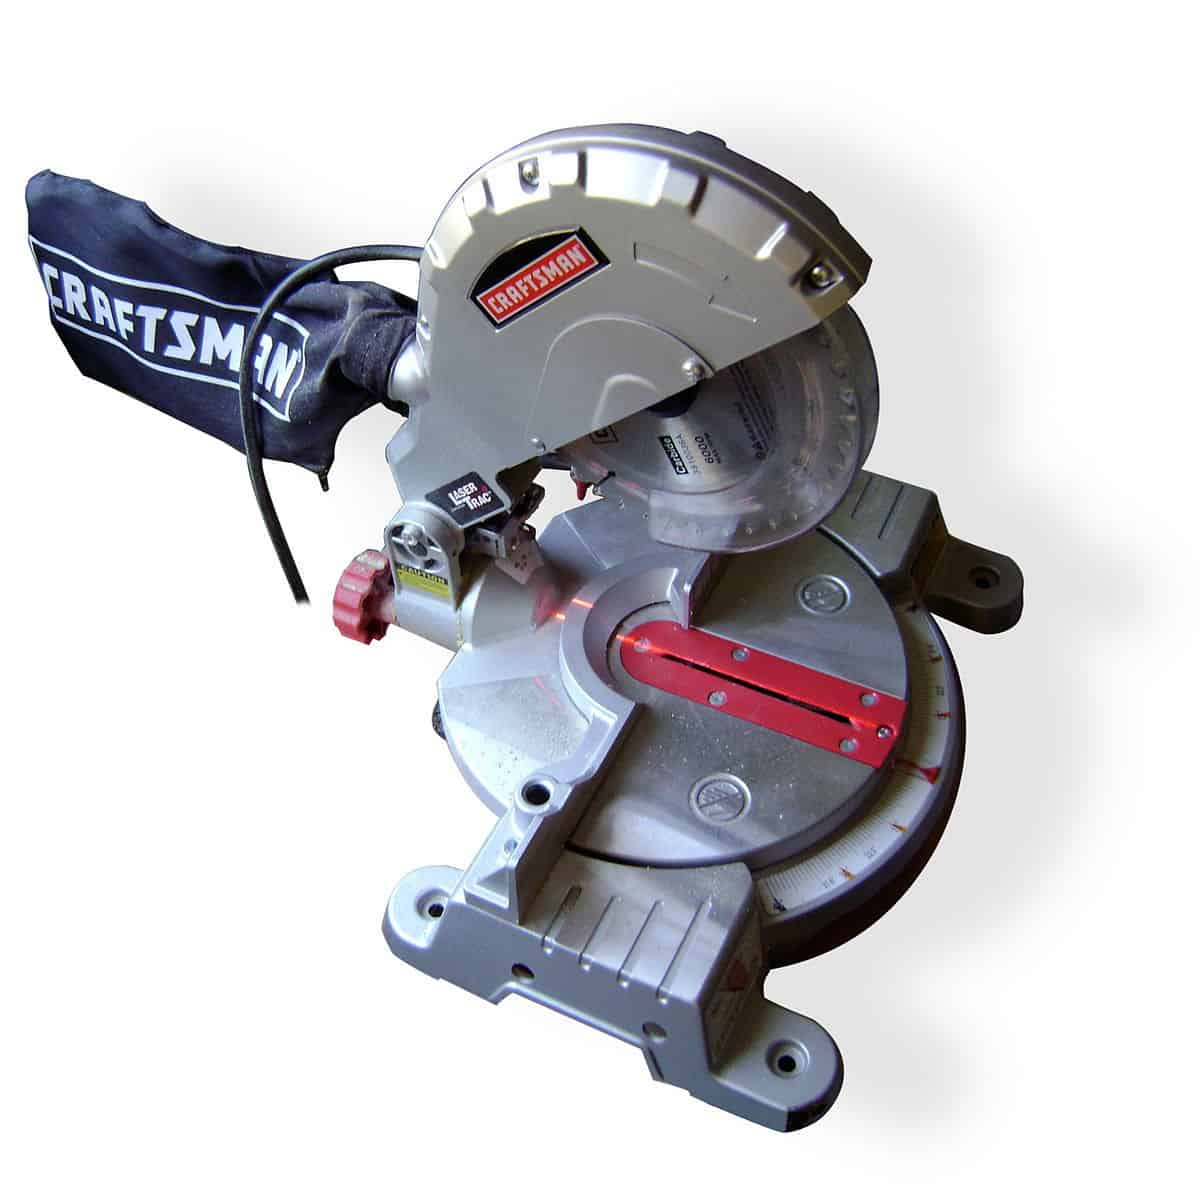 A motorized miter saw